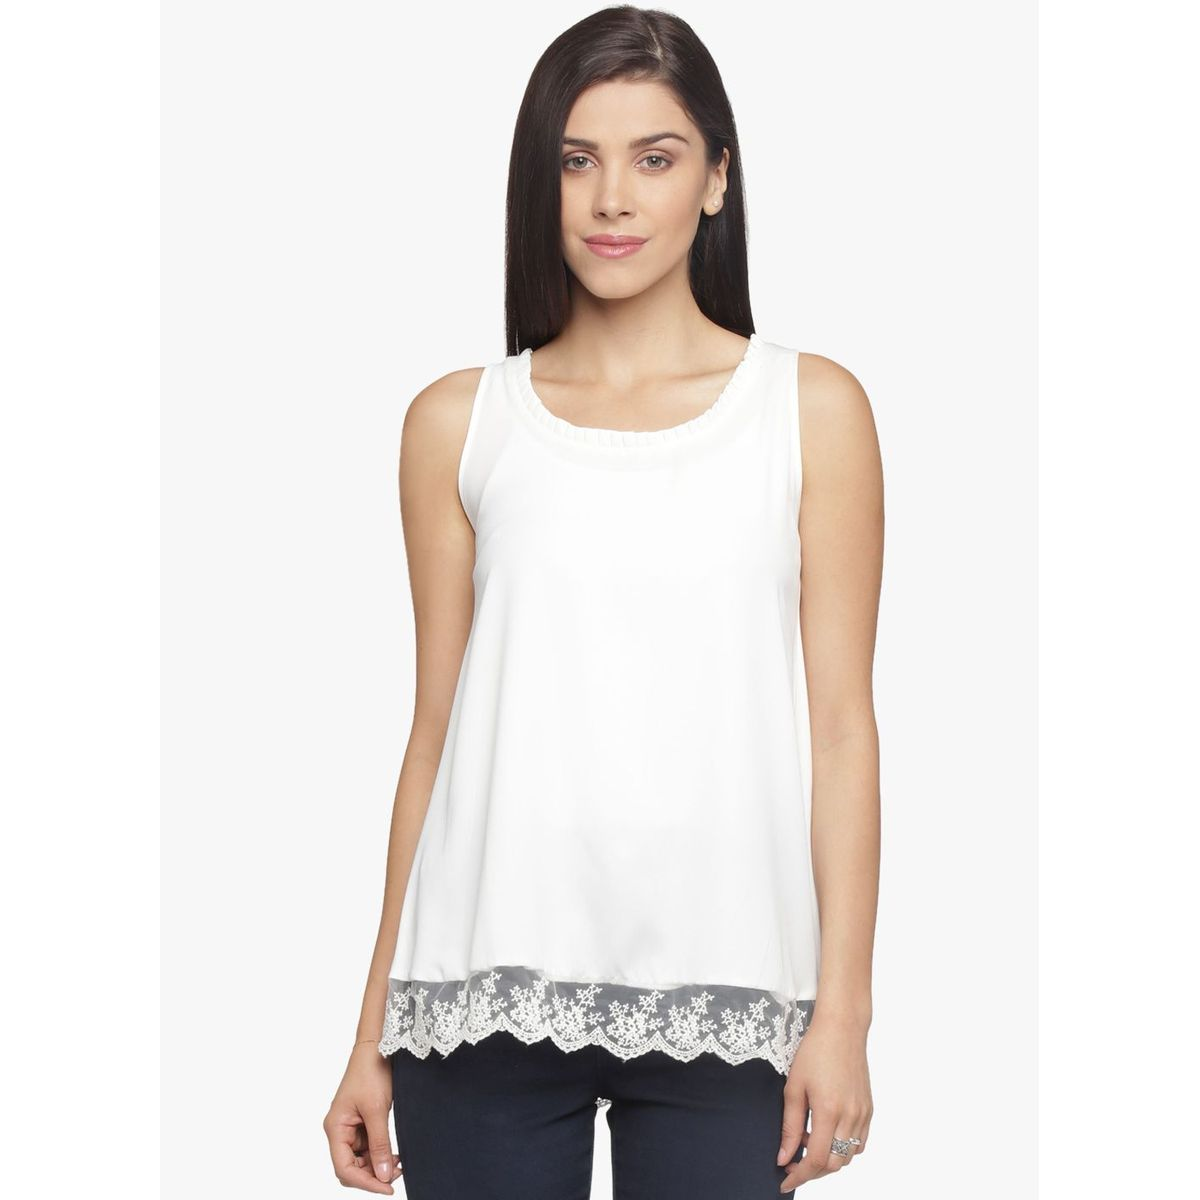 MEGAN WITH BORDER LACE TOP